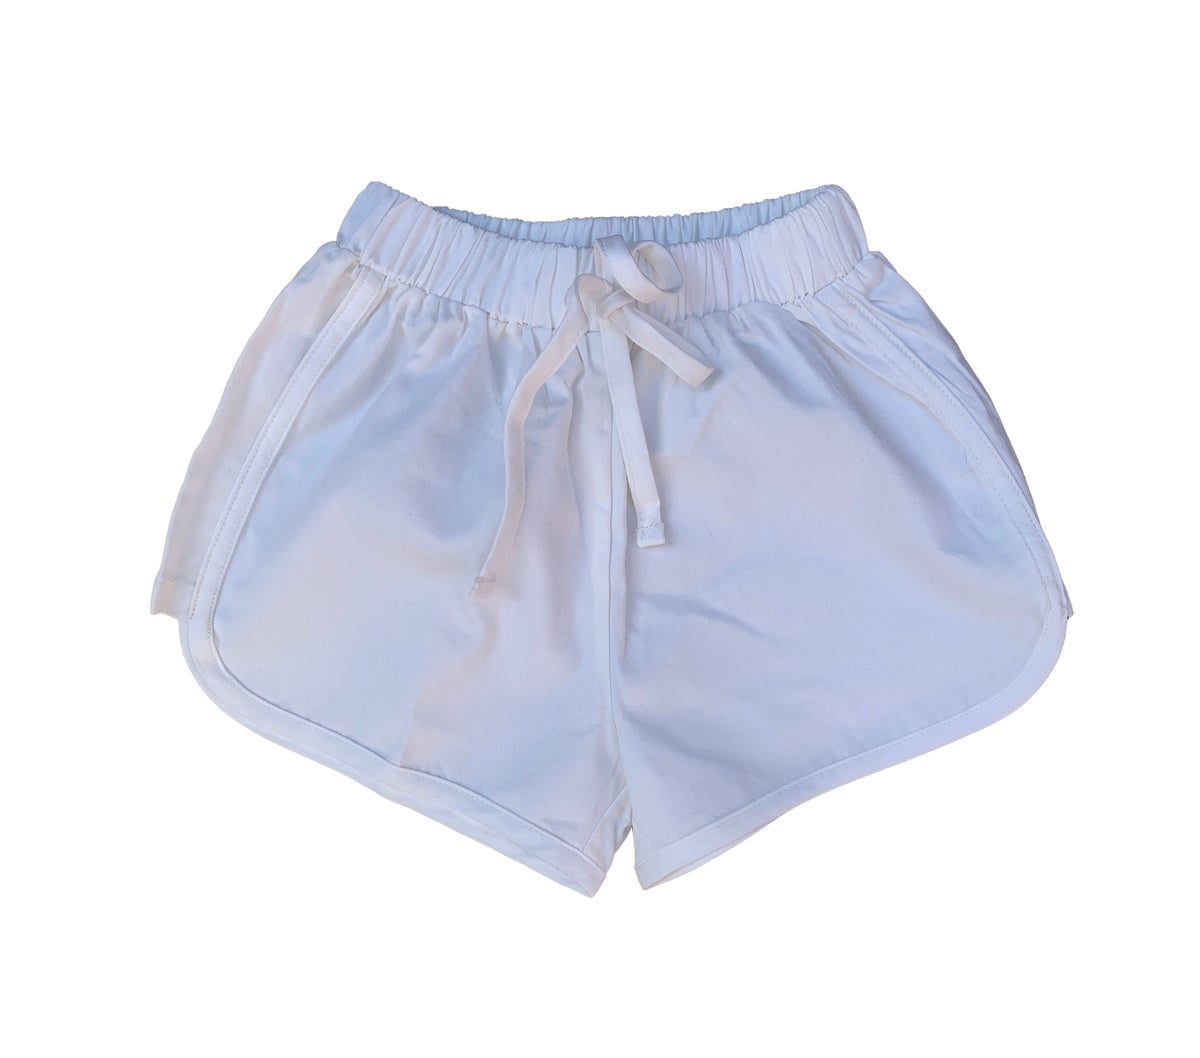 Image of Cotton runner shorts - White